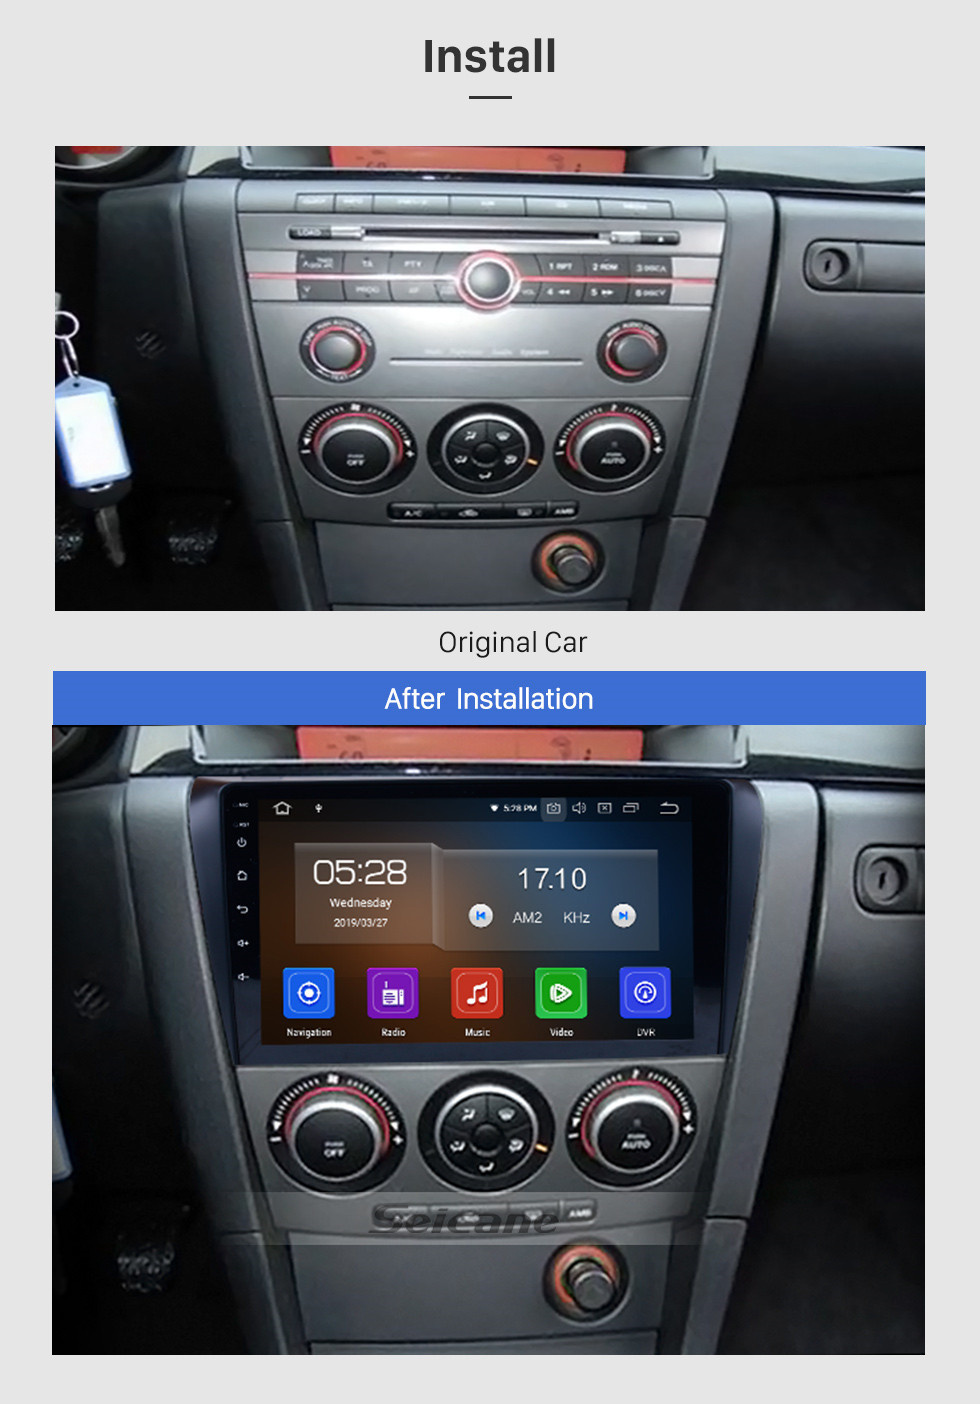 Seicane OEM 2004-2009 Mazda 3 Android 10.0 HD Touchscreen 1024*600 Touchscreen DVD GPS Radio Bluetooth OBD2 DVR Rearview Camera 1080P Steering Wheel Control WIFI